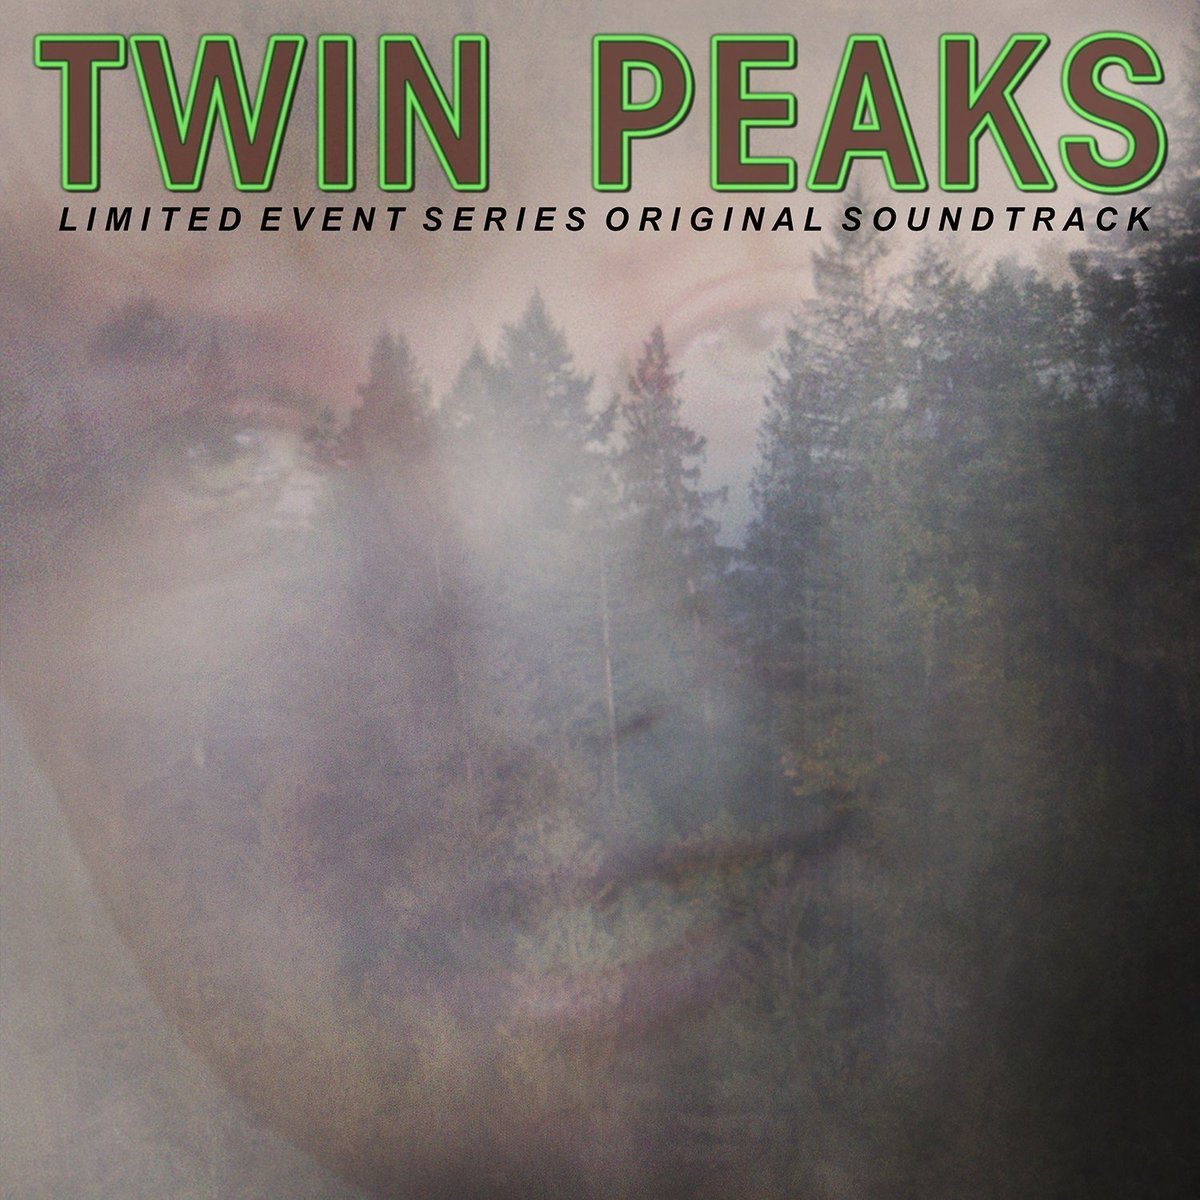 Twin Peaks (Limited Event Series Soundtrack) by Various Artists image